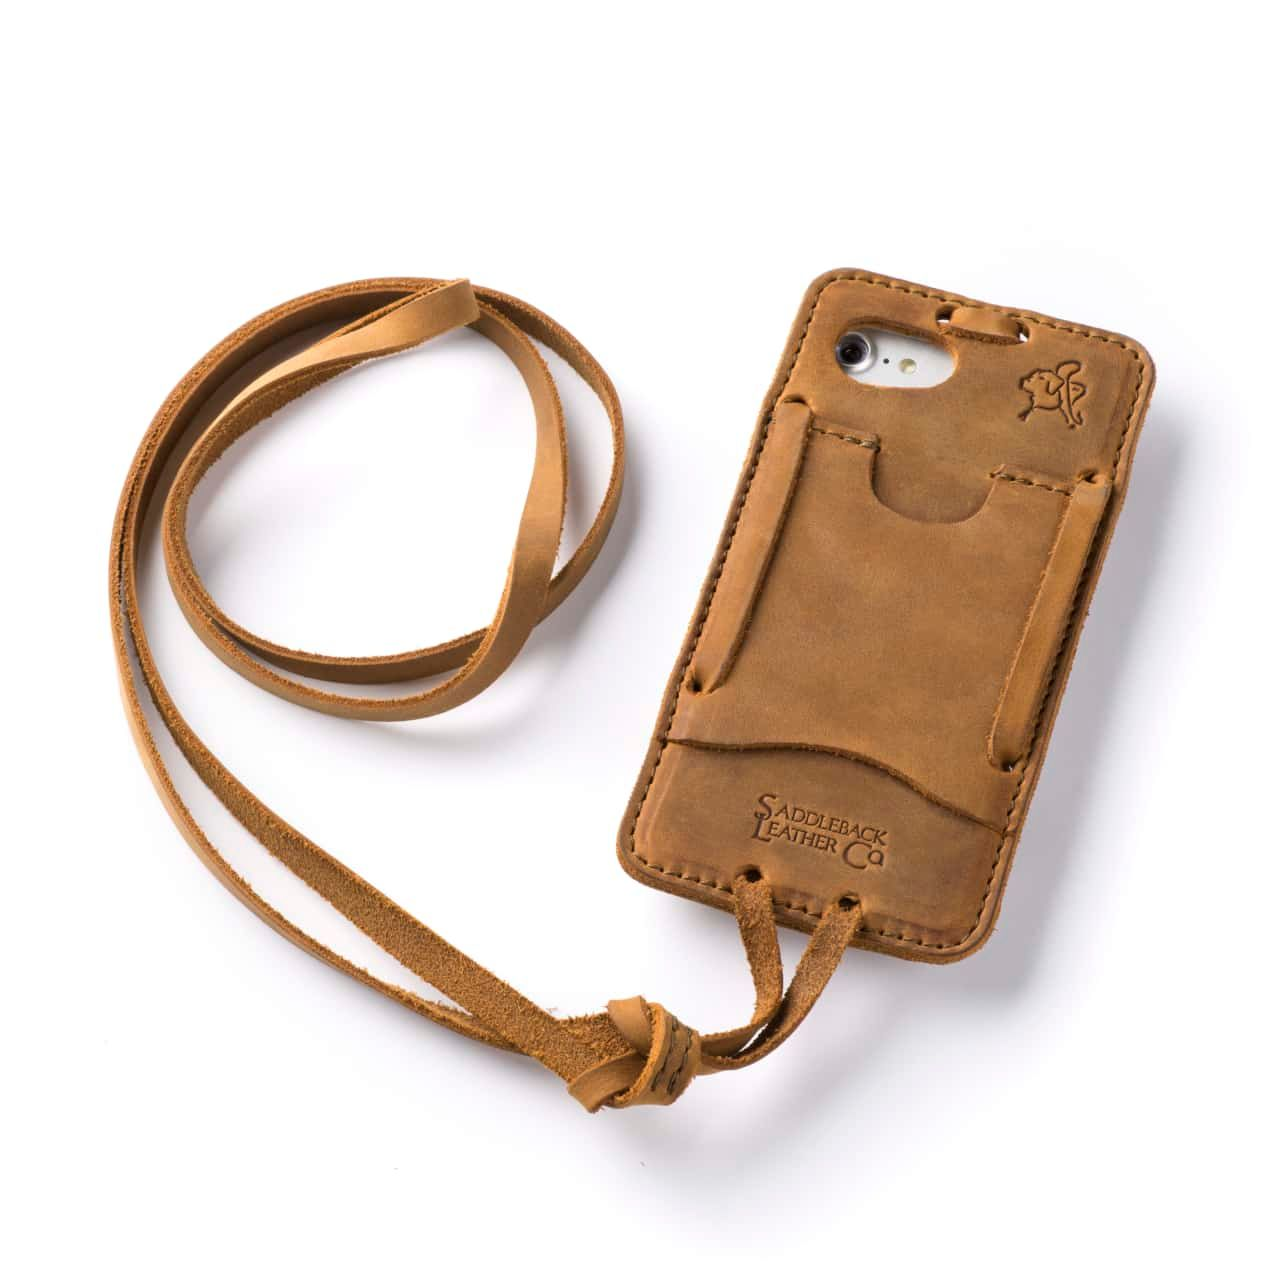 Leather iPhone 8 Case in Color Tobacco with the Lanyard attached back angle showing empty card slot